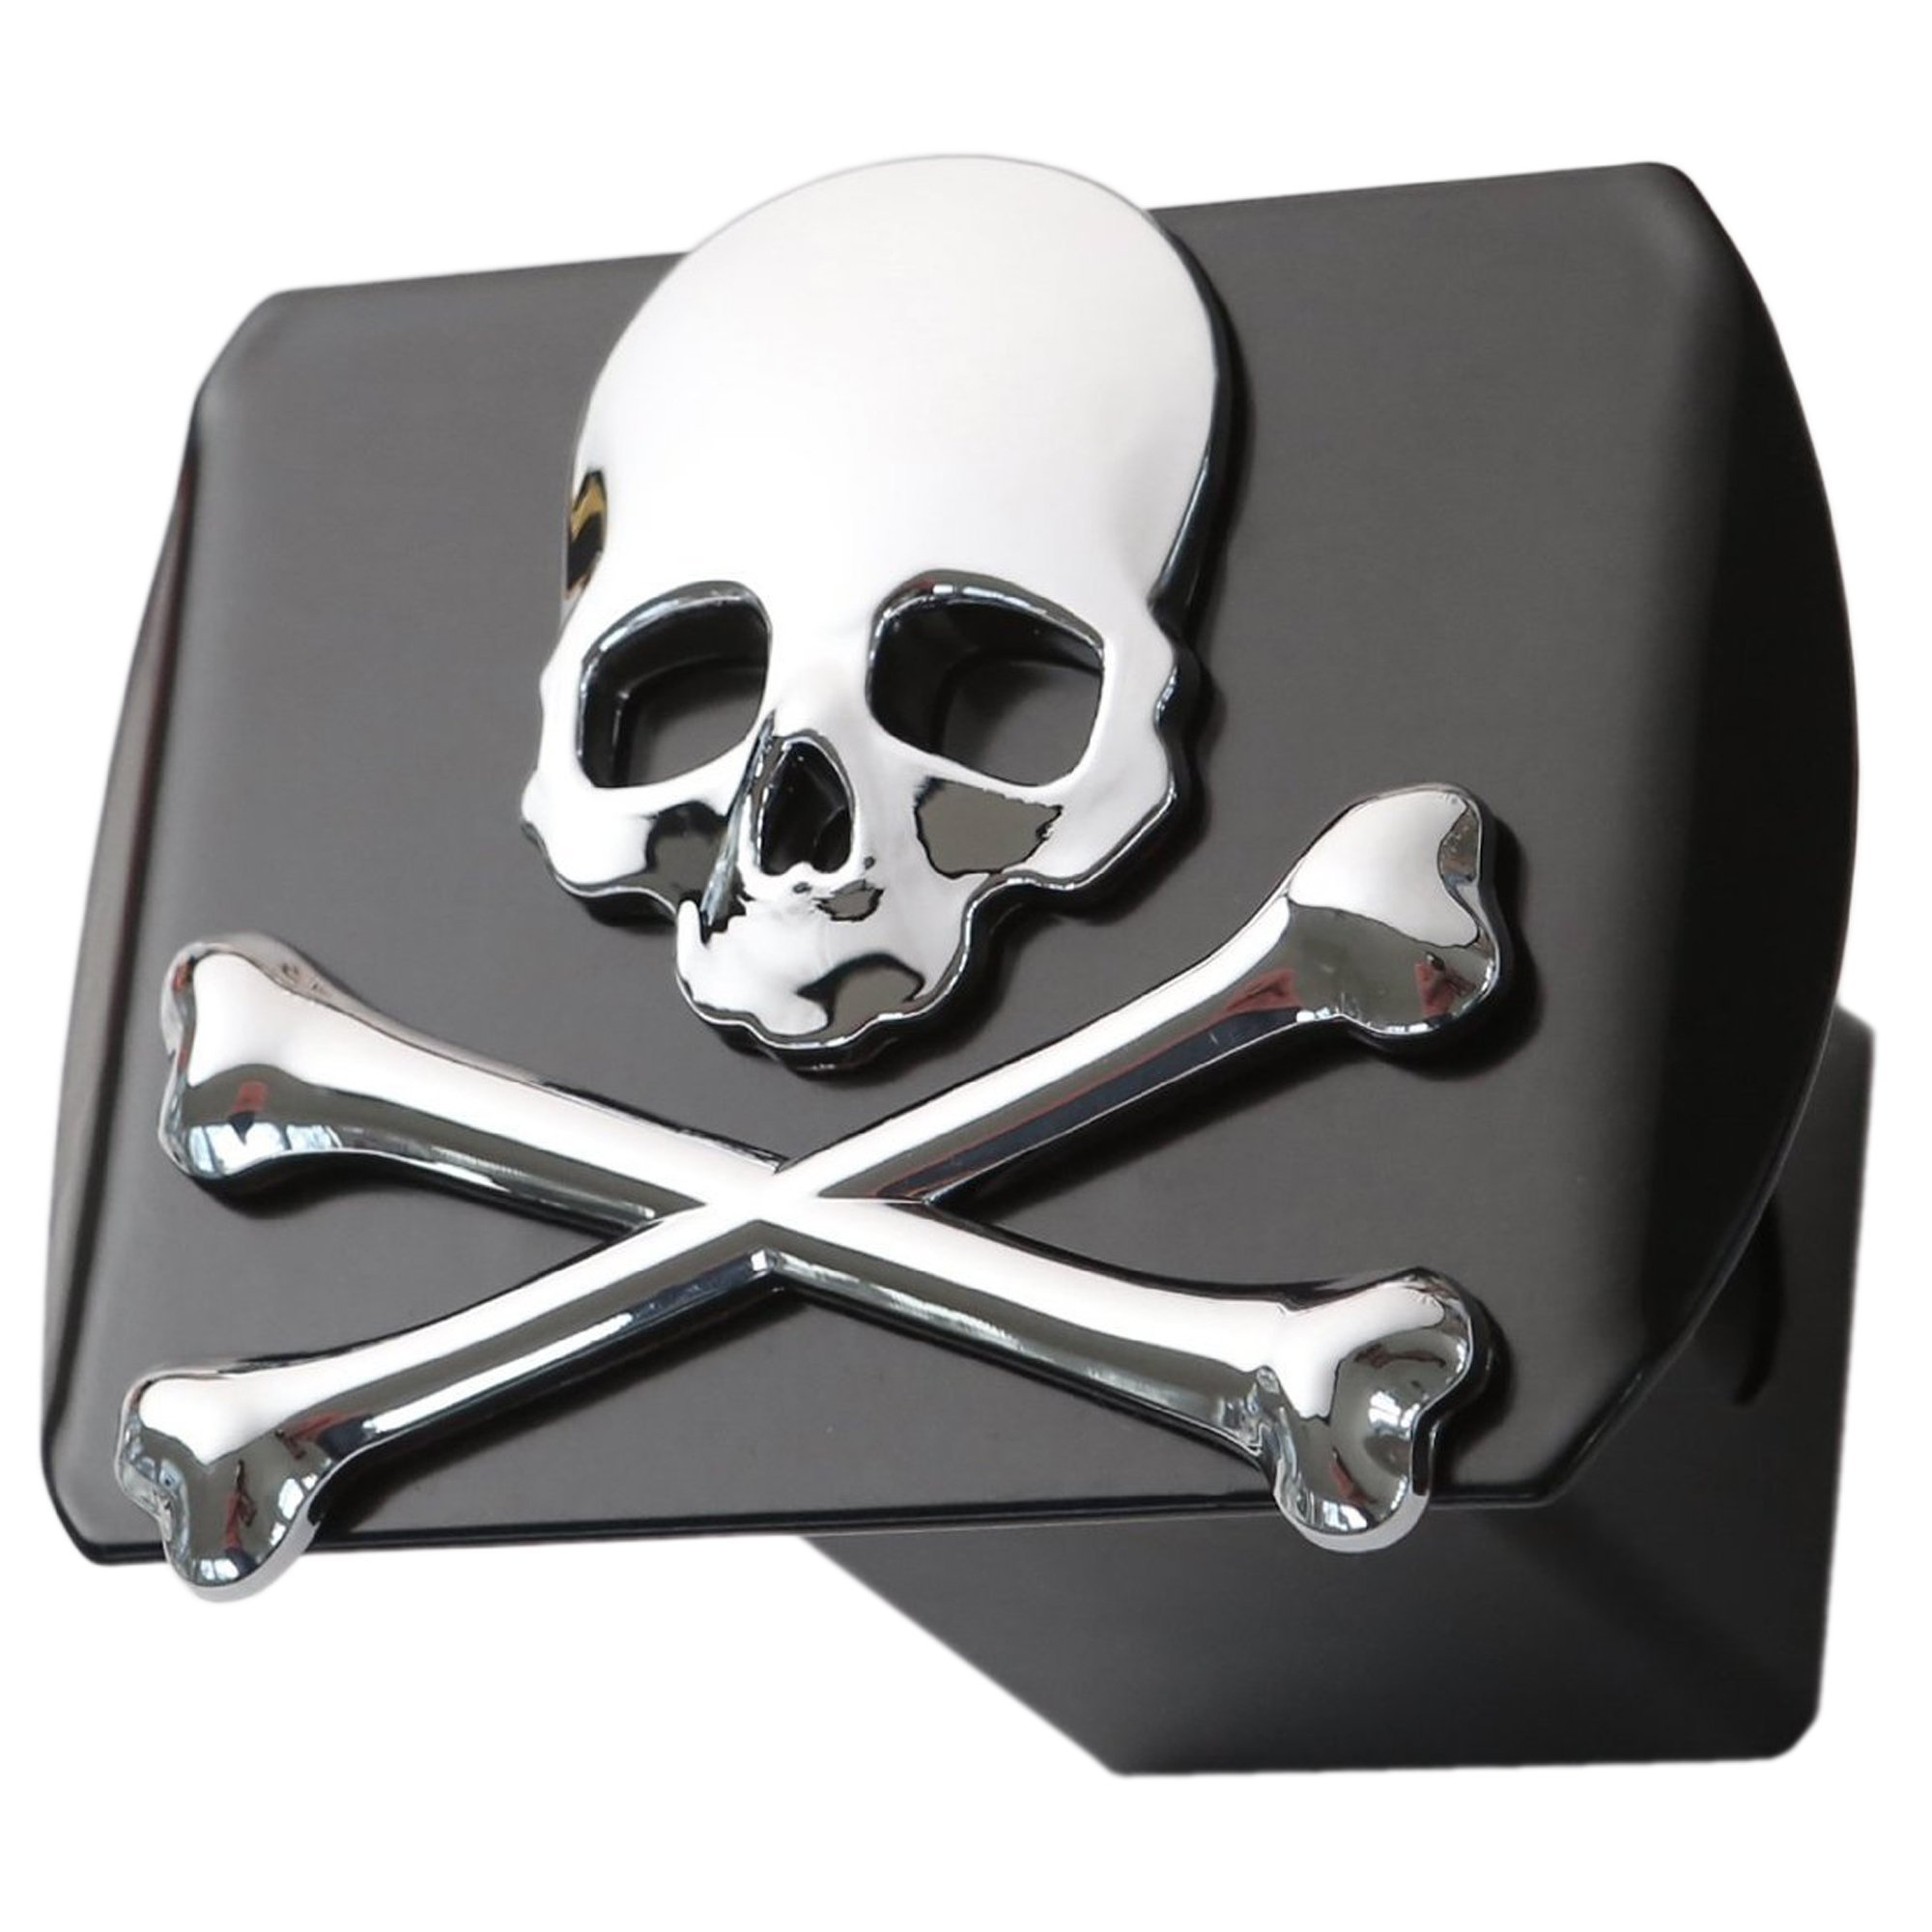 LFPartS Metal Skull 3D Crossbones Chrome Emblem Trailer Metal Hitch Cover Fits 2'' Receivers New (Chrome on Black) by LFPartS